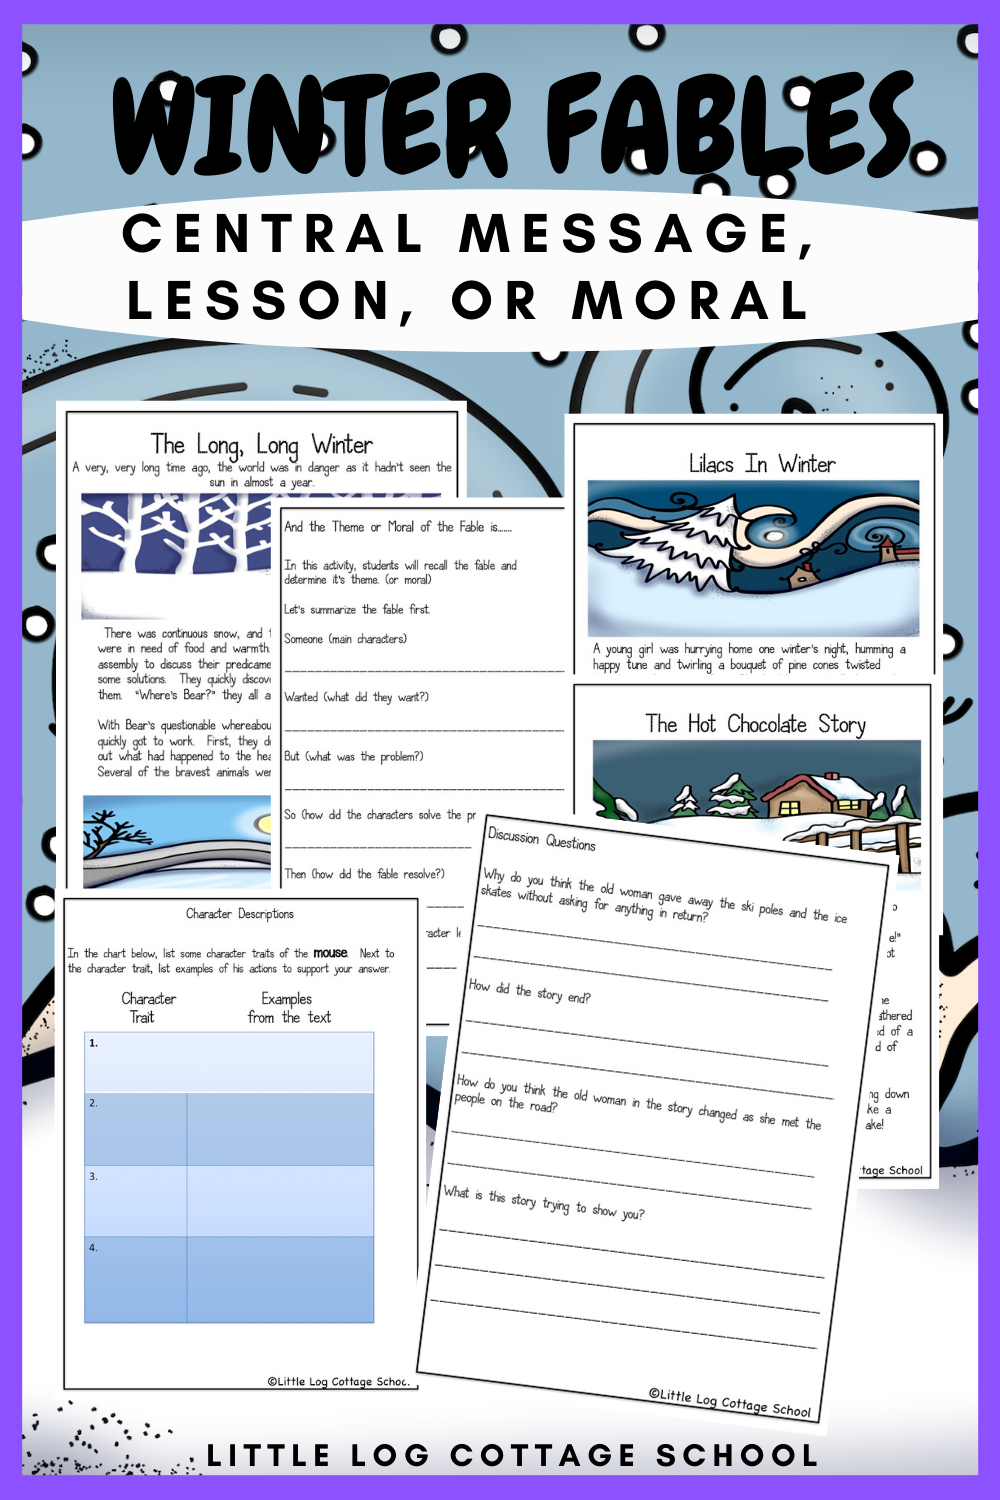 Folktales For Winter Central Message Lesson Or Moral Fable Lessons Central Message Winter Reading Activities [ 1500 x 1000 Pixel ]